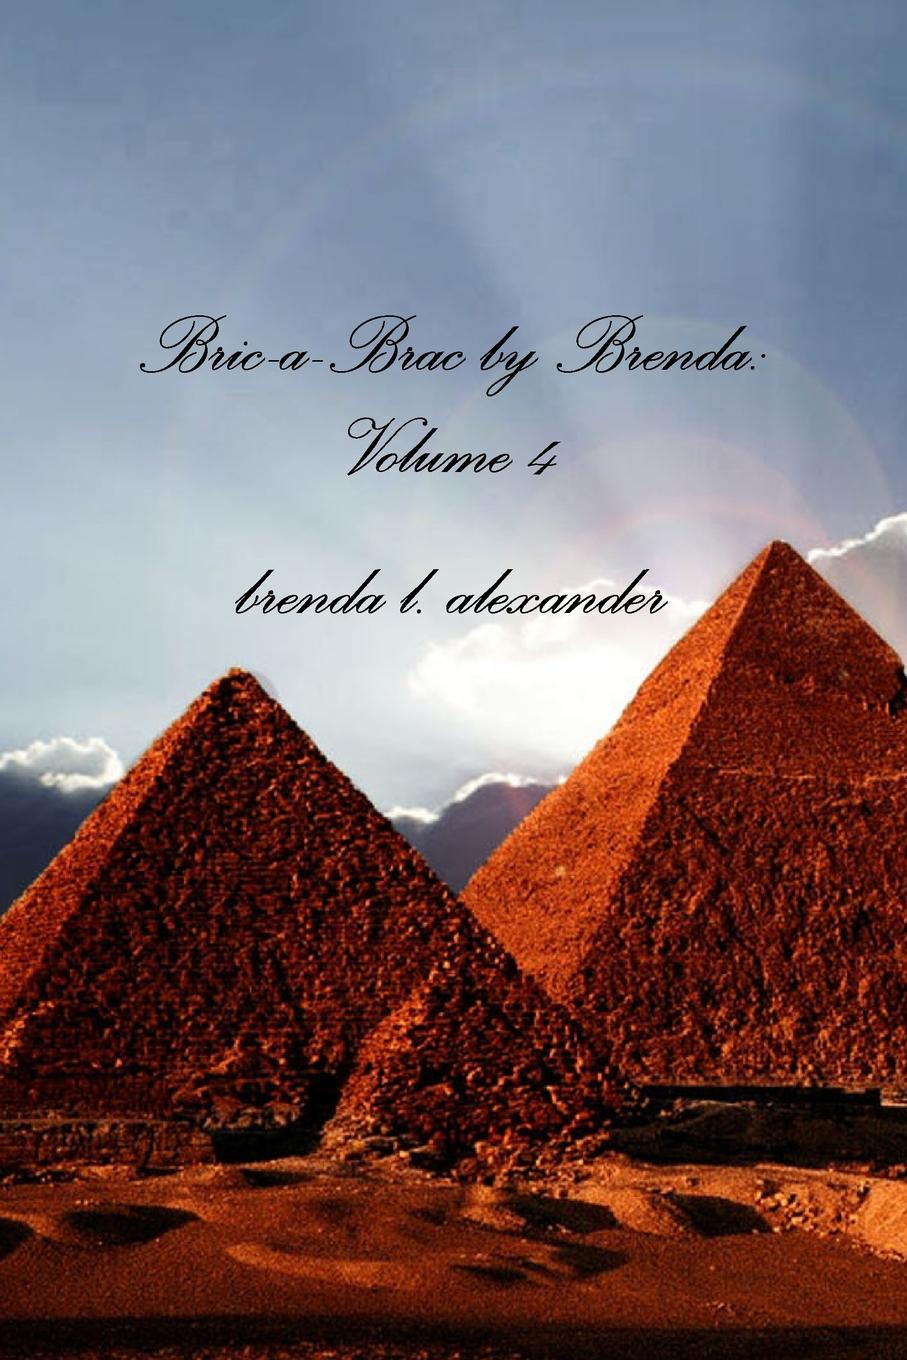 бренда ли brenda lee brenda that s all all alone am i brenda alexander Bric-a-Brac by Brenda. Volume 4